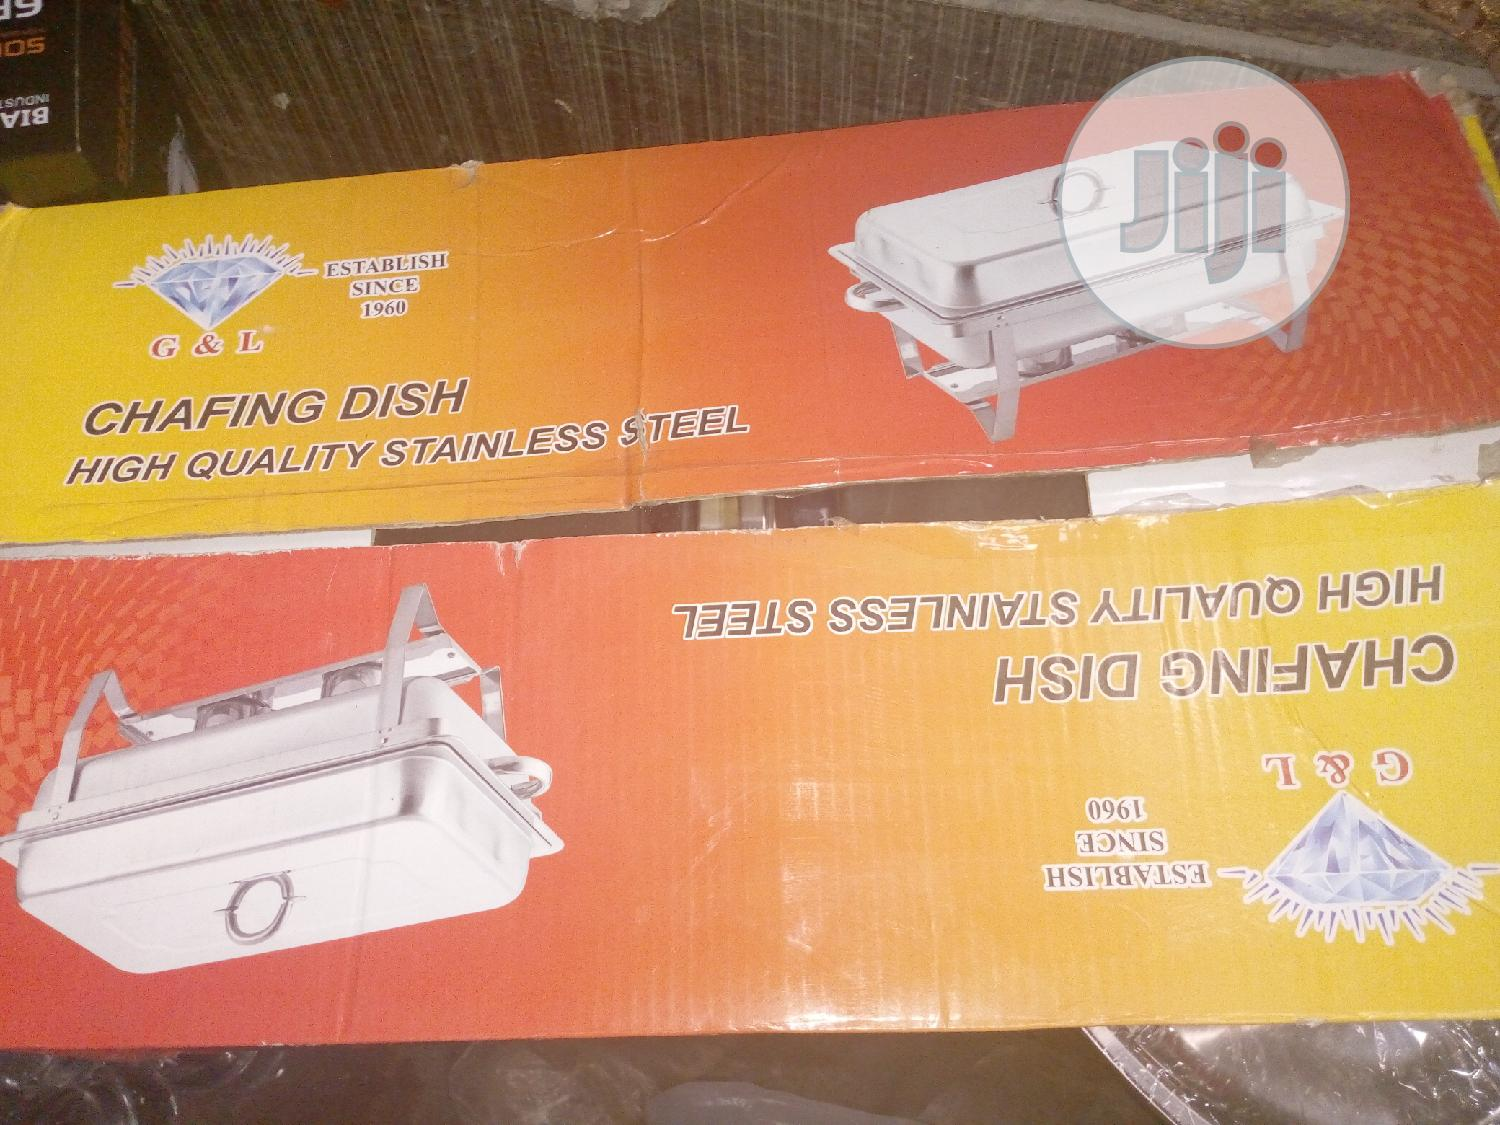 Archive: High Quality Stainless Steel Chafing Dishes